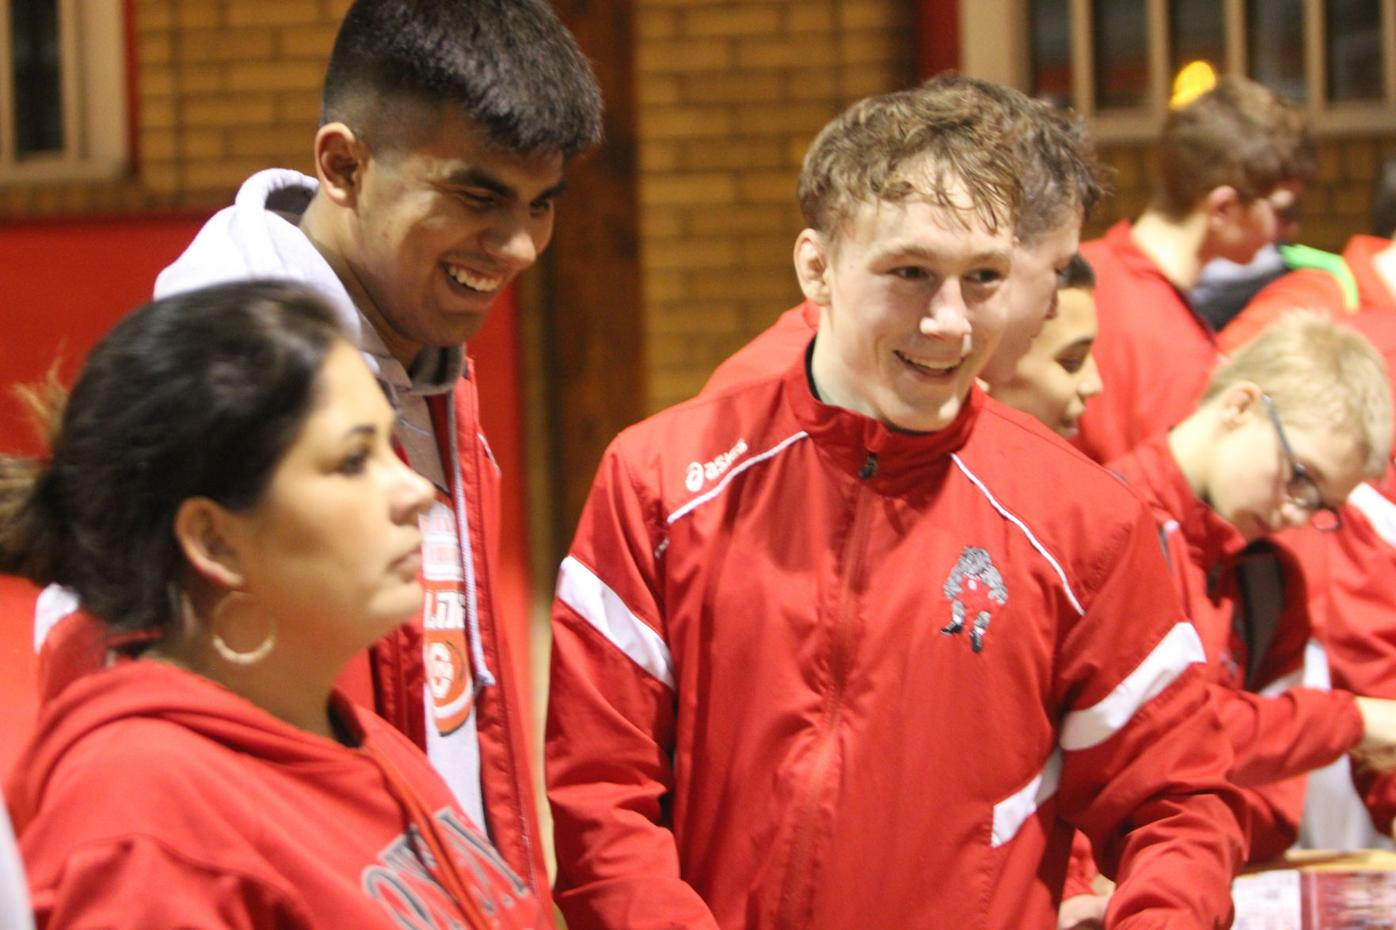 OHS wrestlers return to roots competing in wood gym